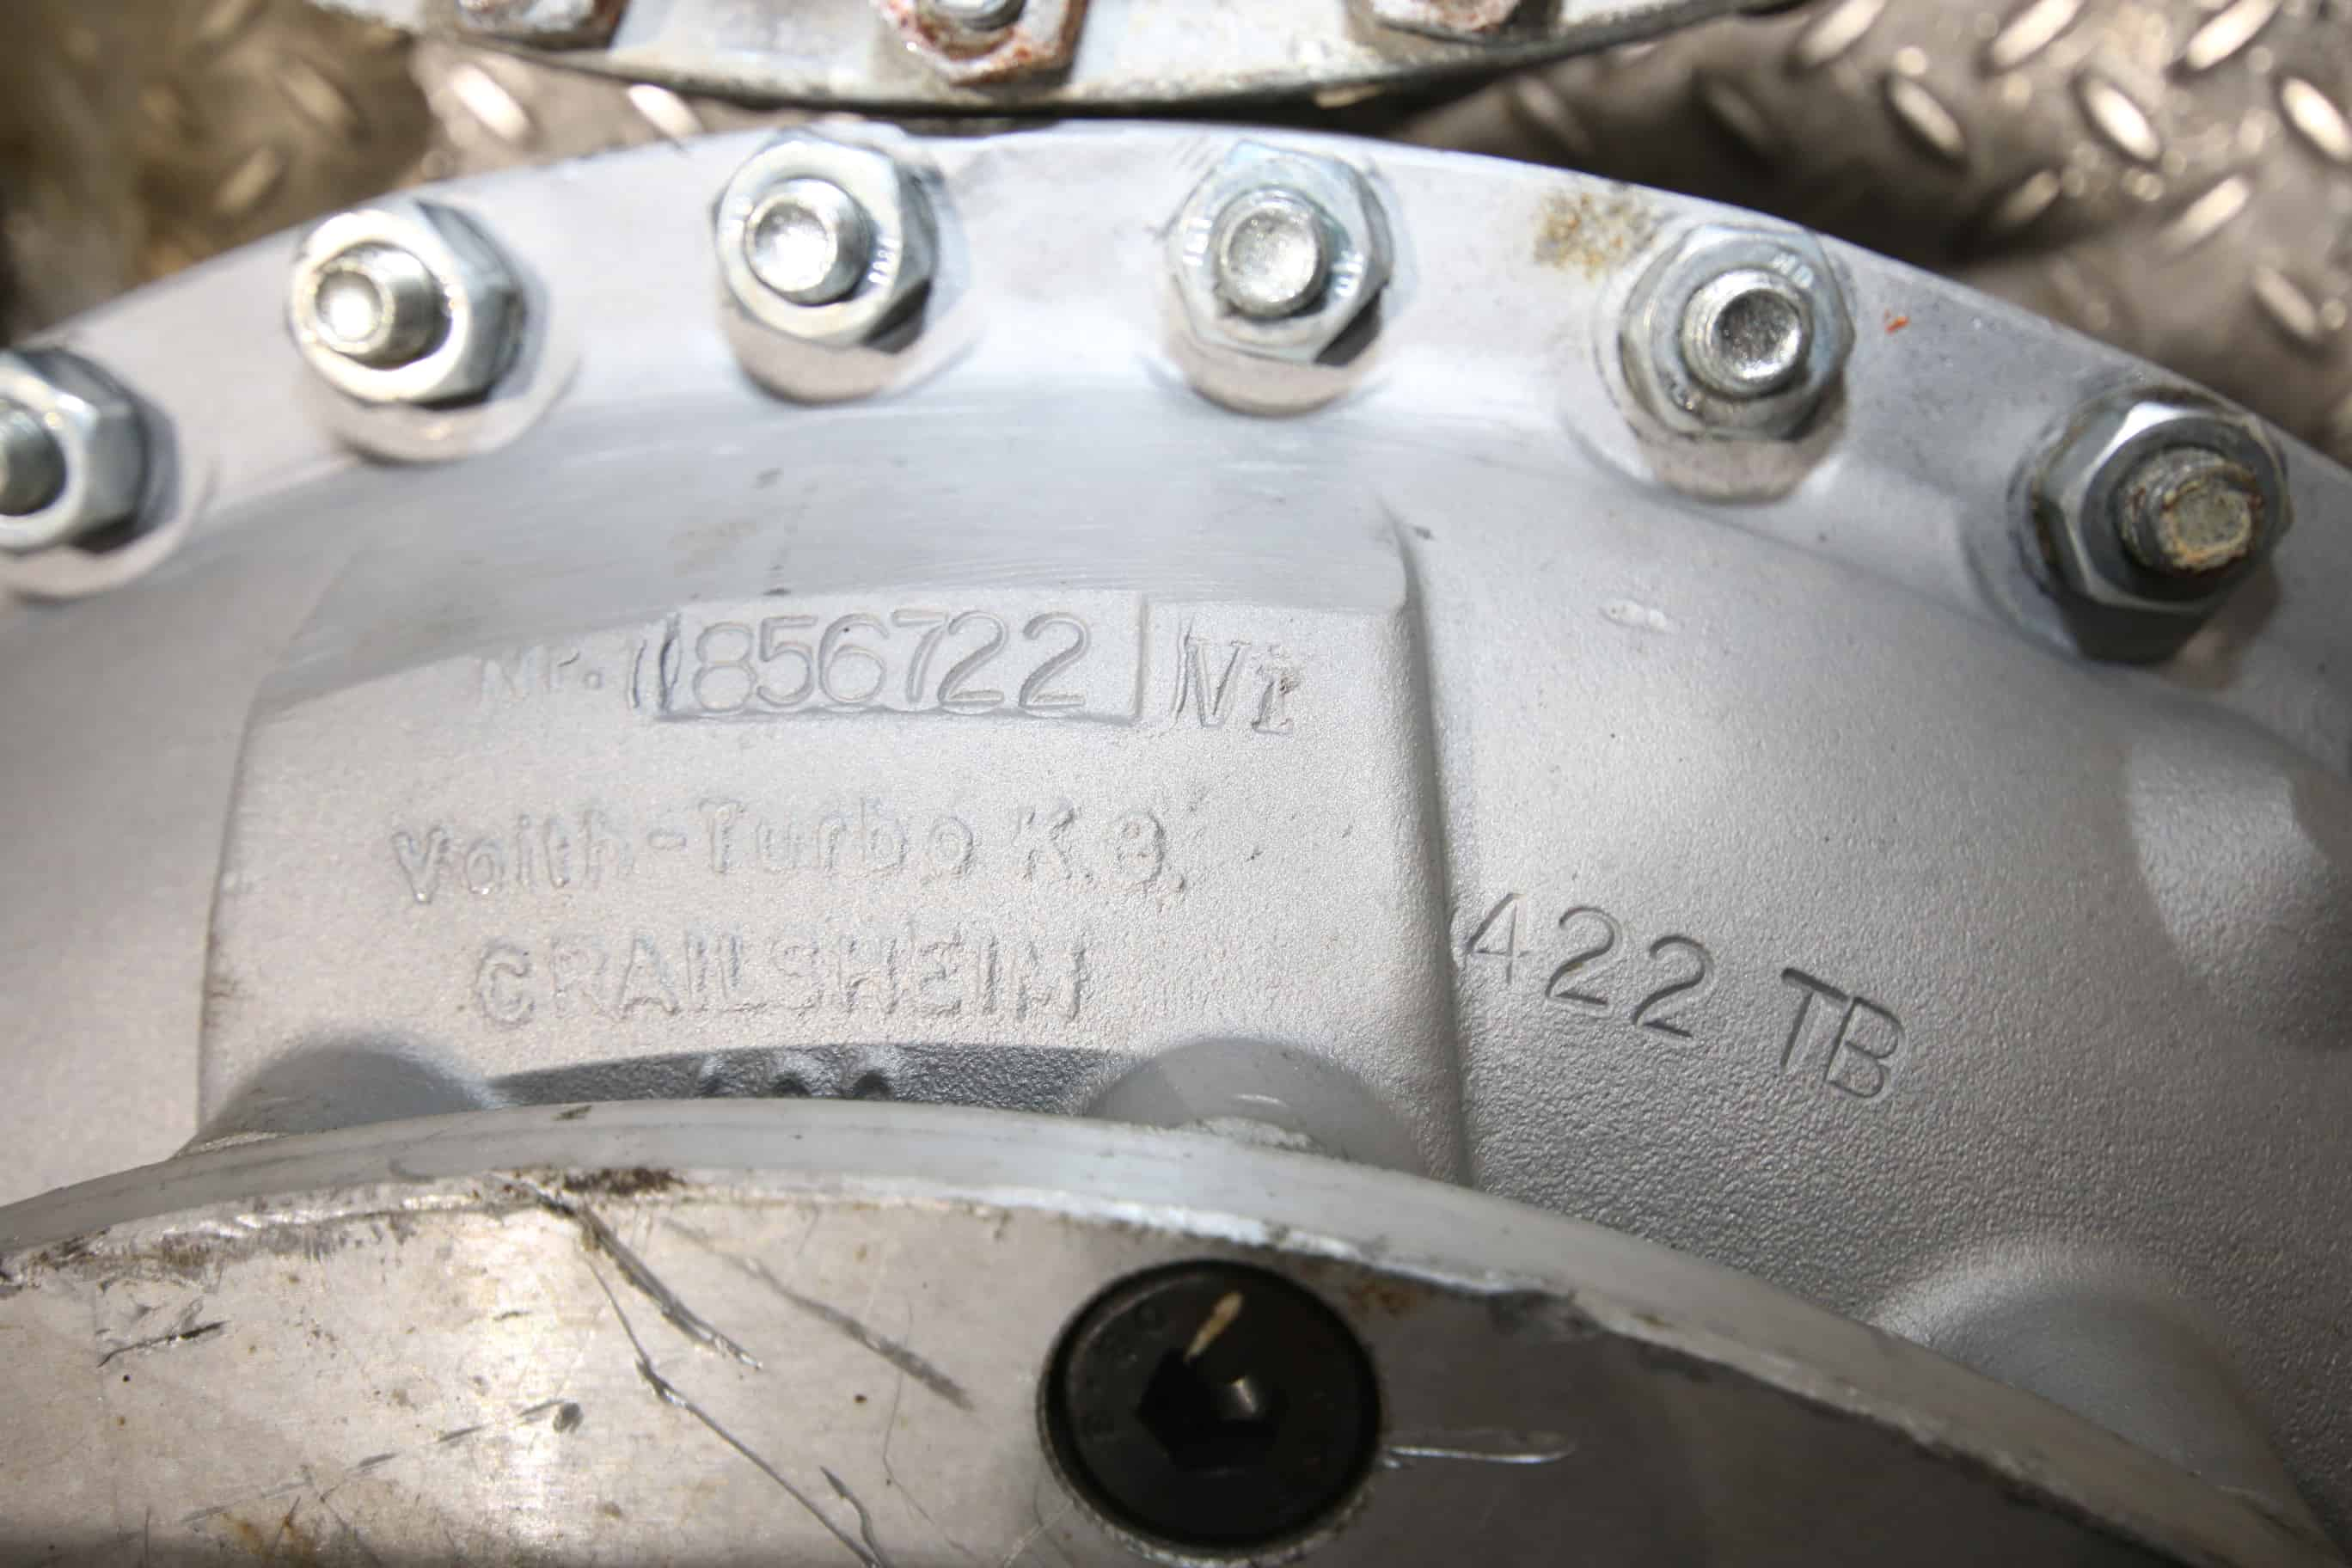 GEA/Westfalia MSB170 and Other Separator/Centrifuge Clutch, Type 422TB, Part #856722 (Note: Appears to be New or Rebuilt)